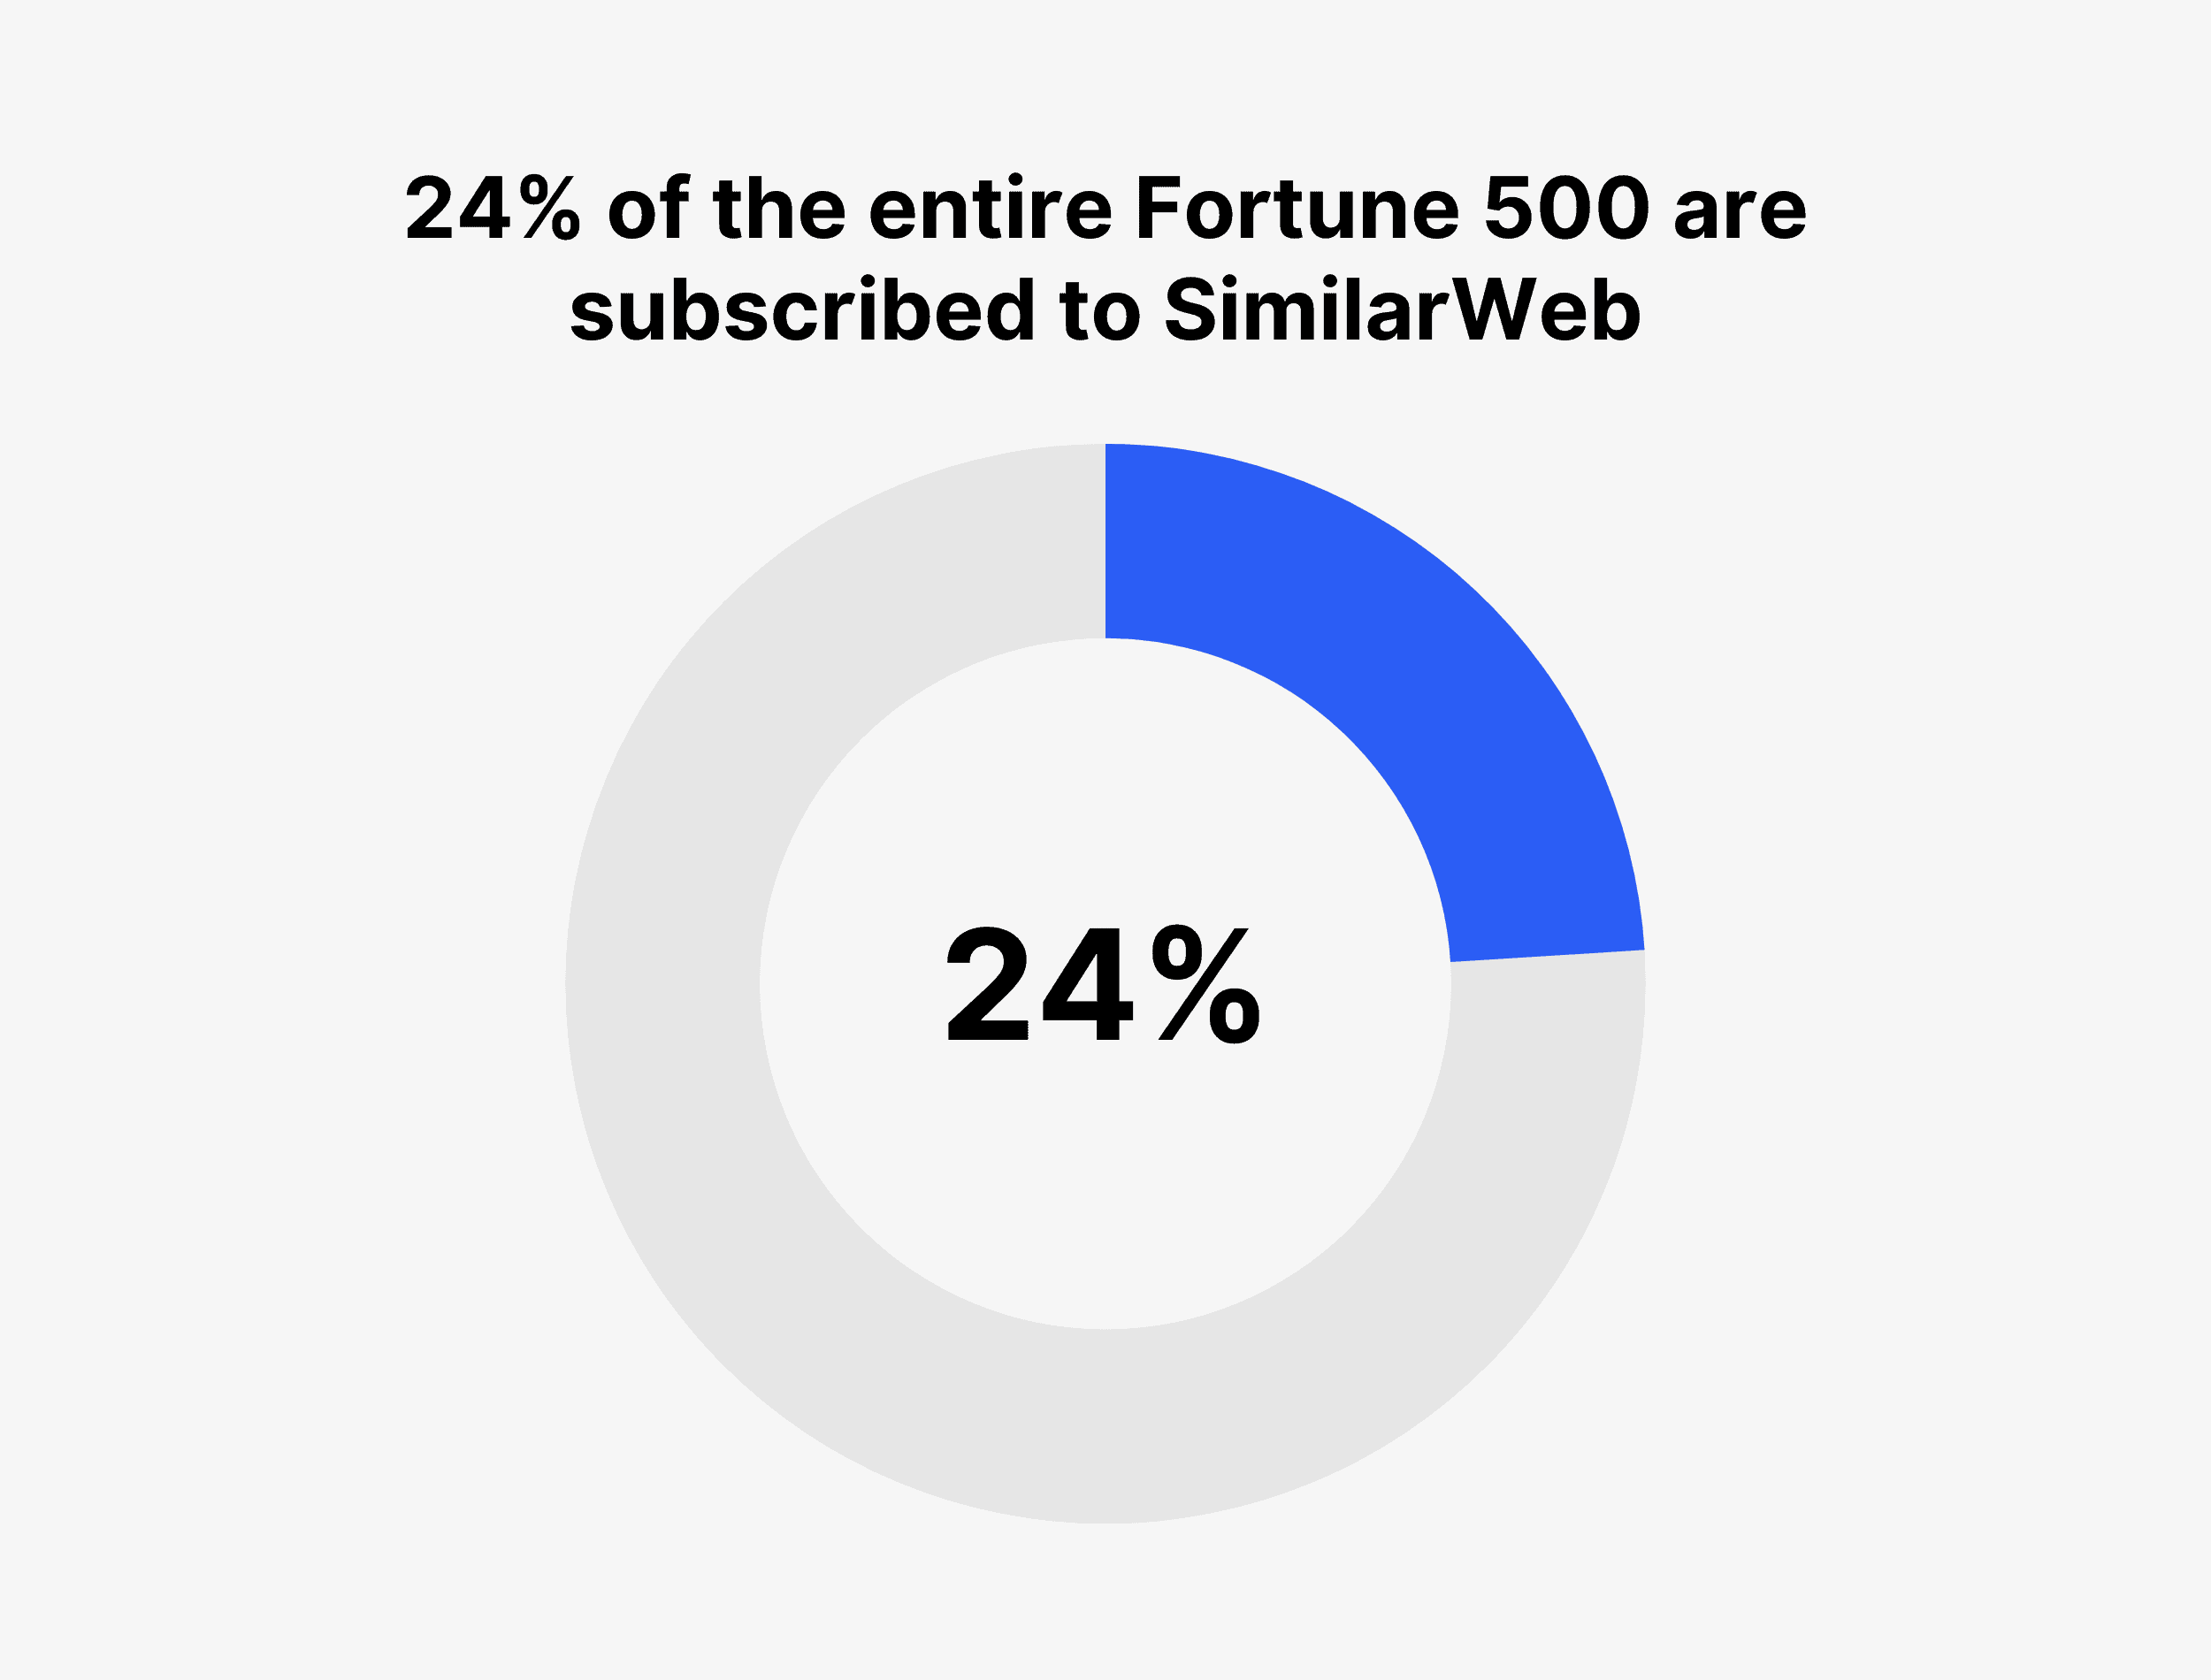 24% of the entire Fortune 500 are subscribed to SimilarWeb